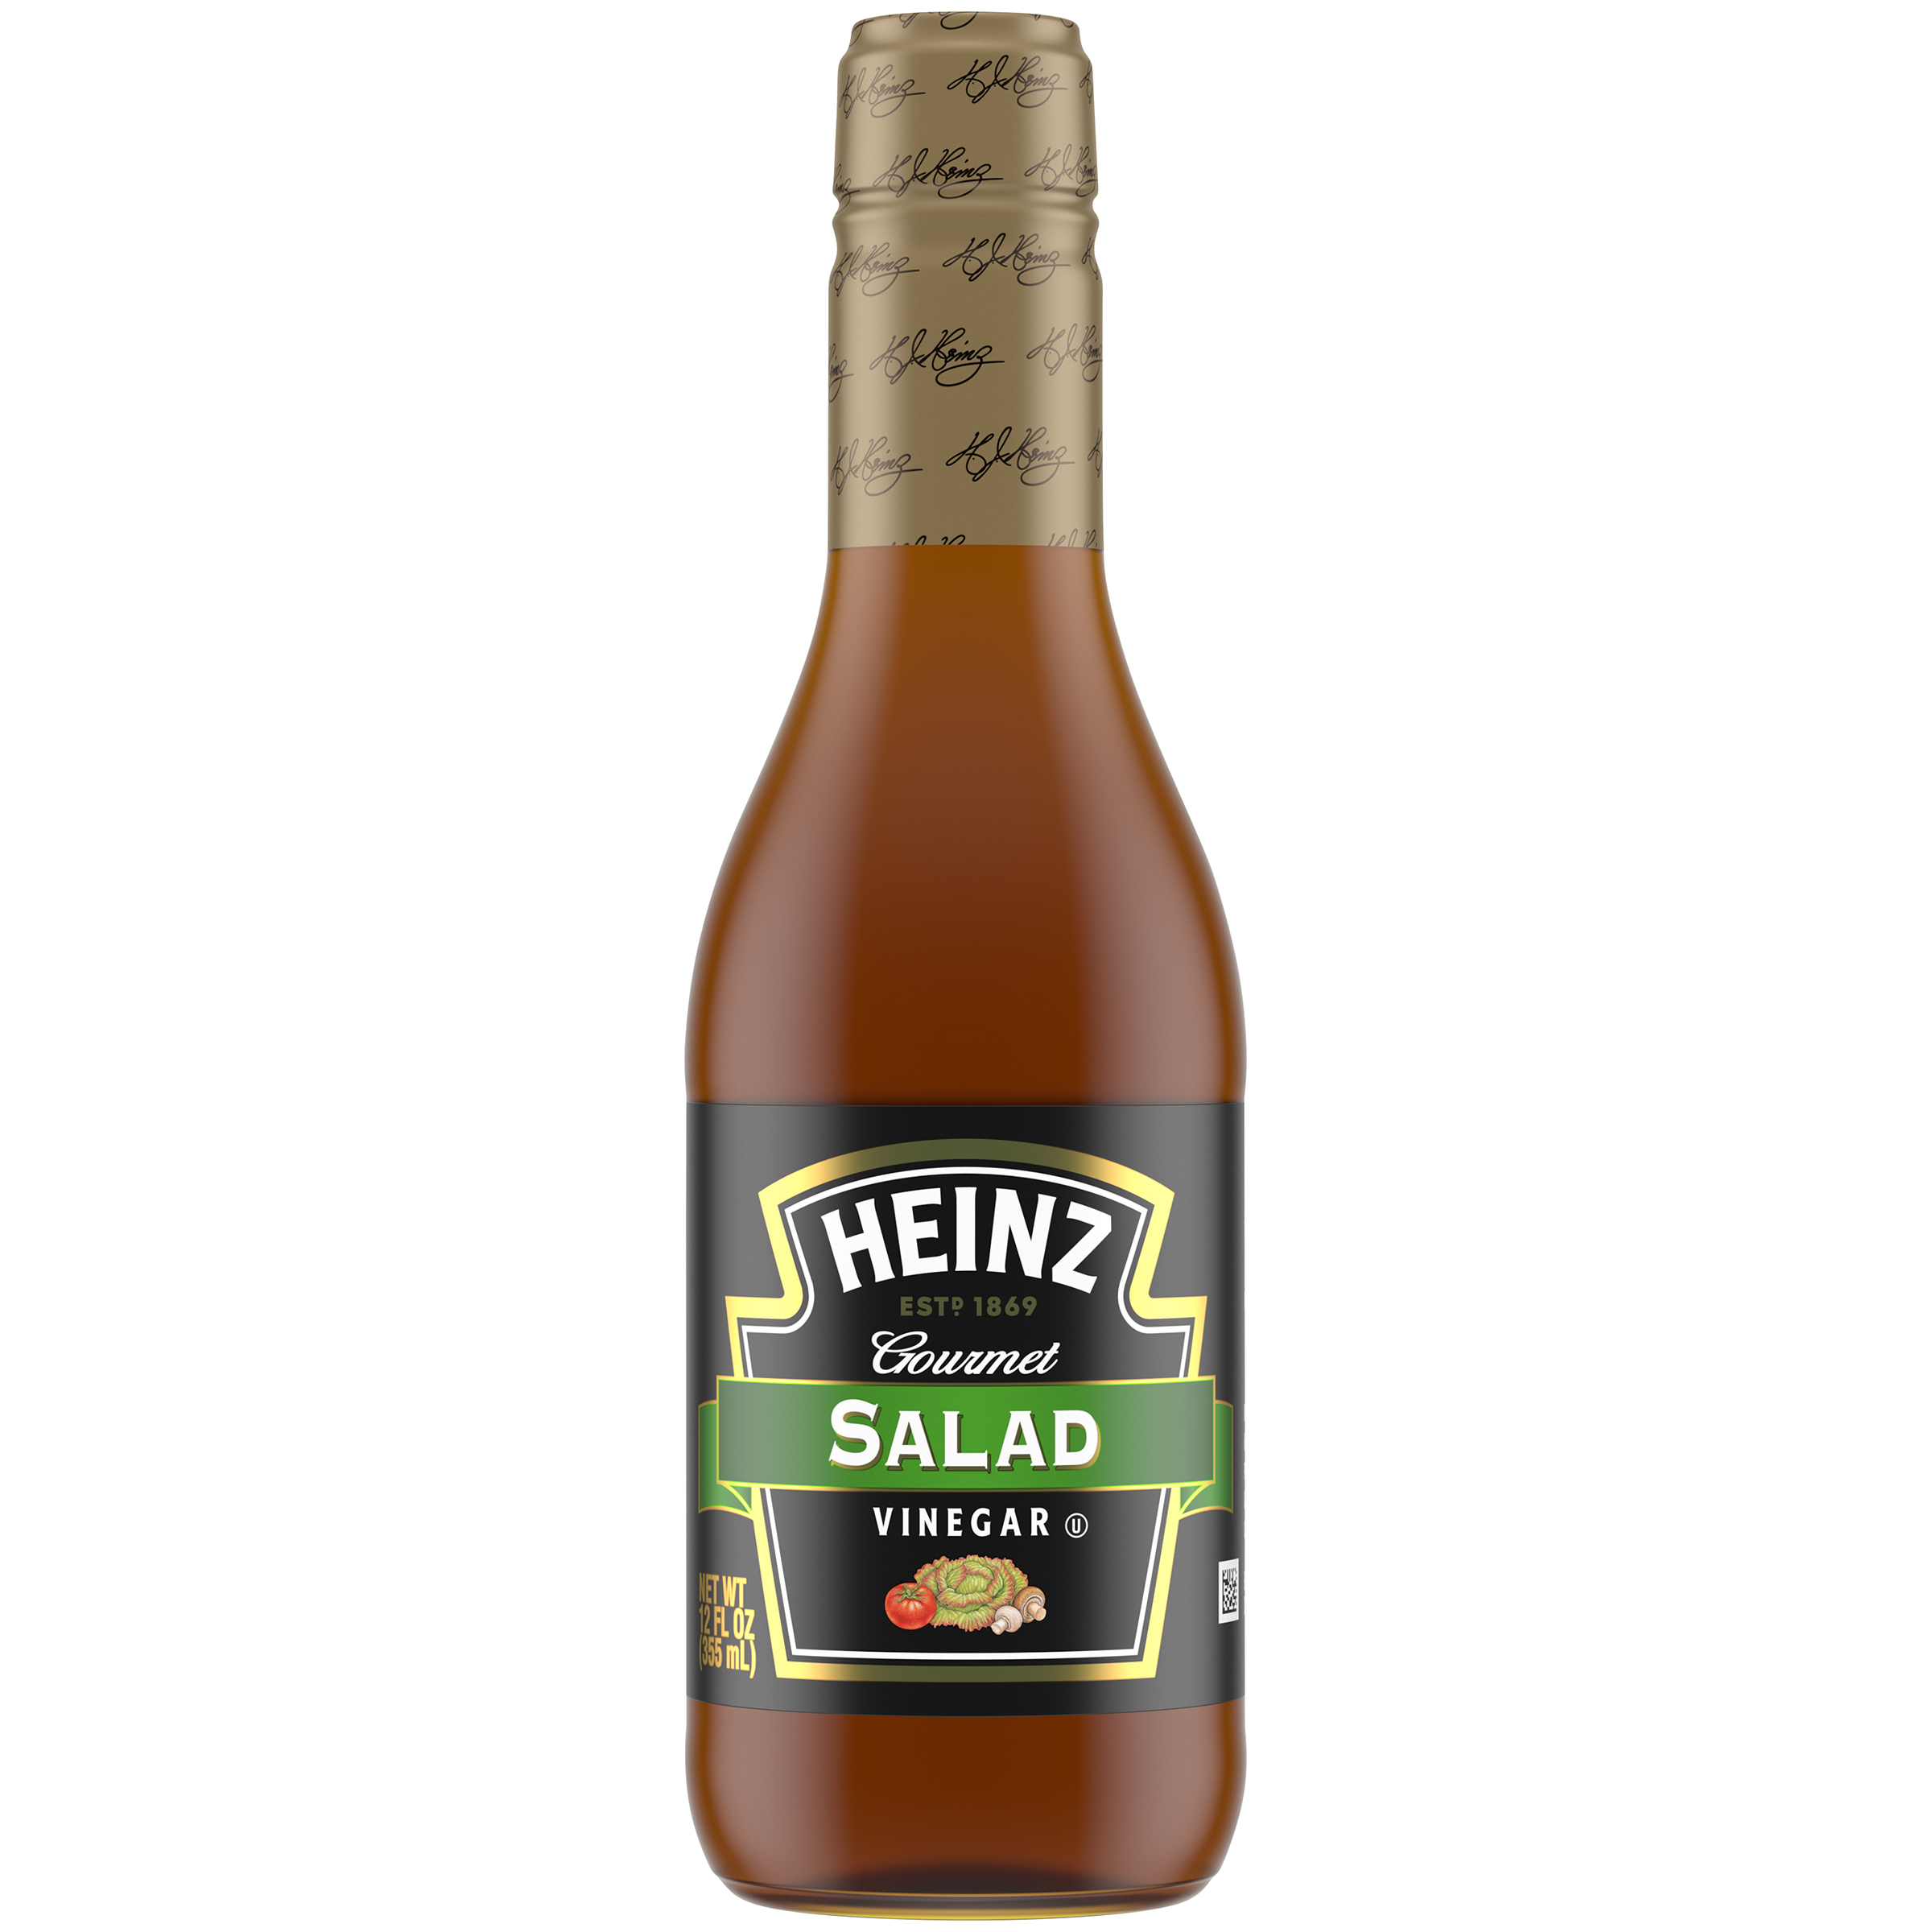 Heinz Gourmet Salad Vinegar 12 fl oz Bottle